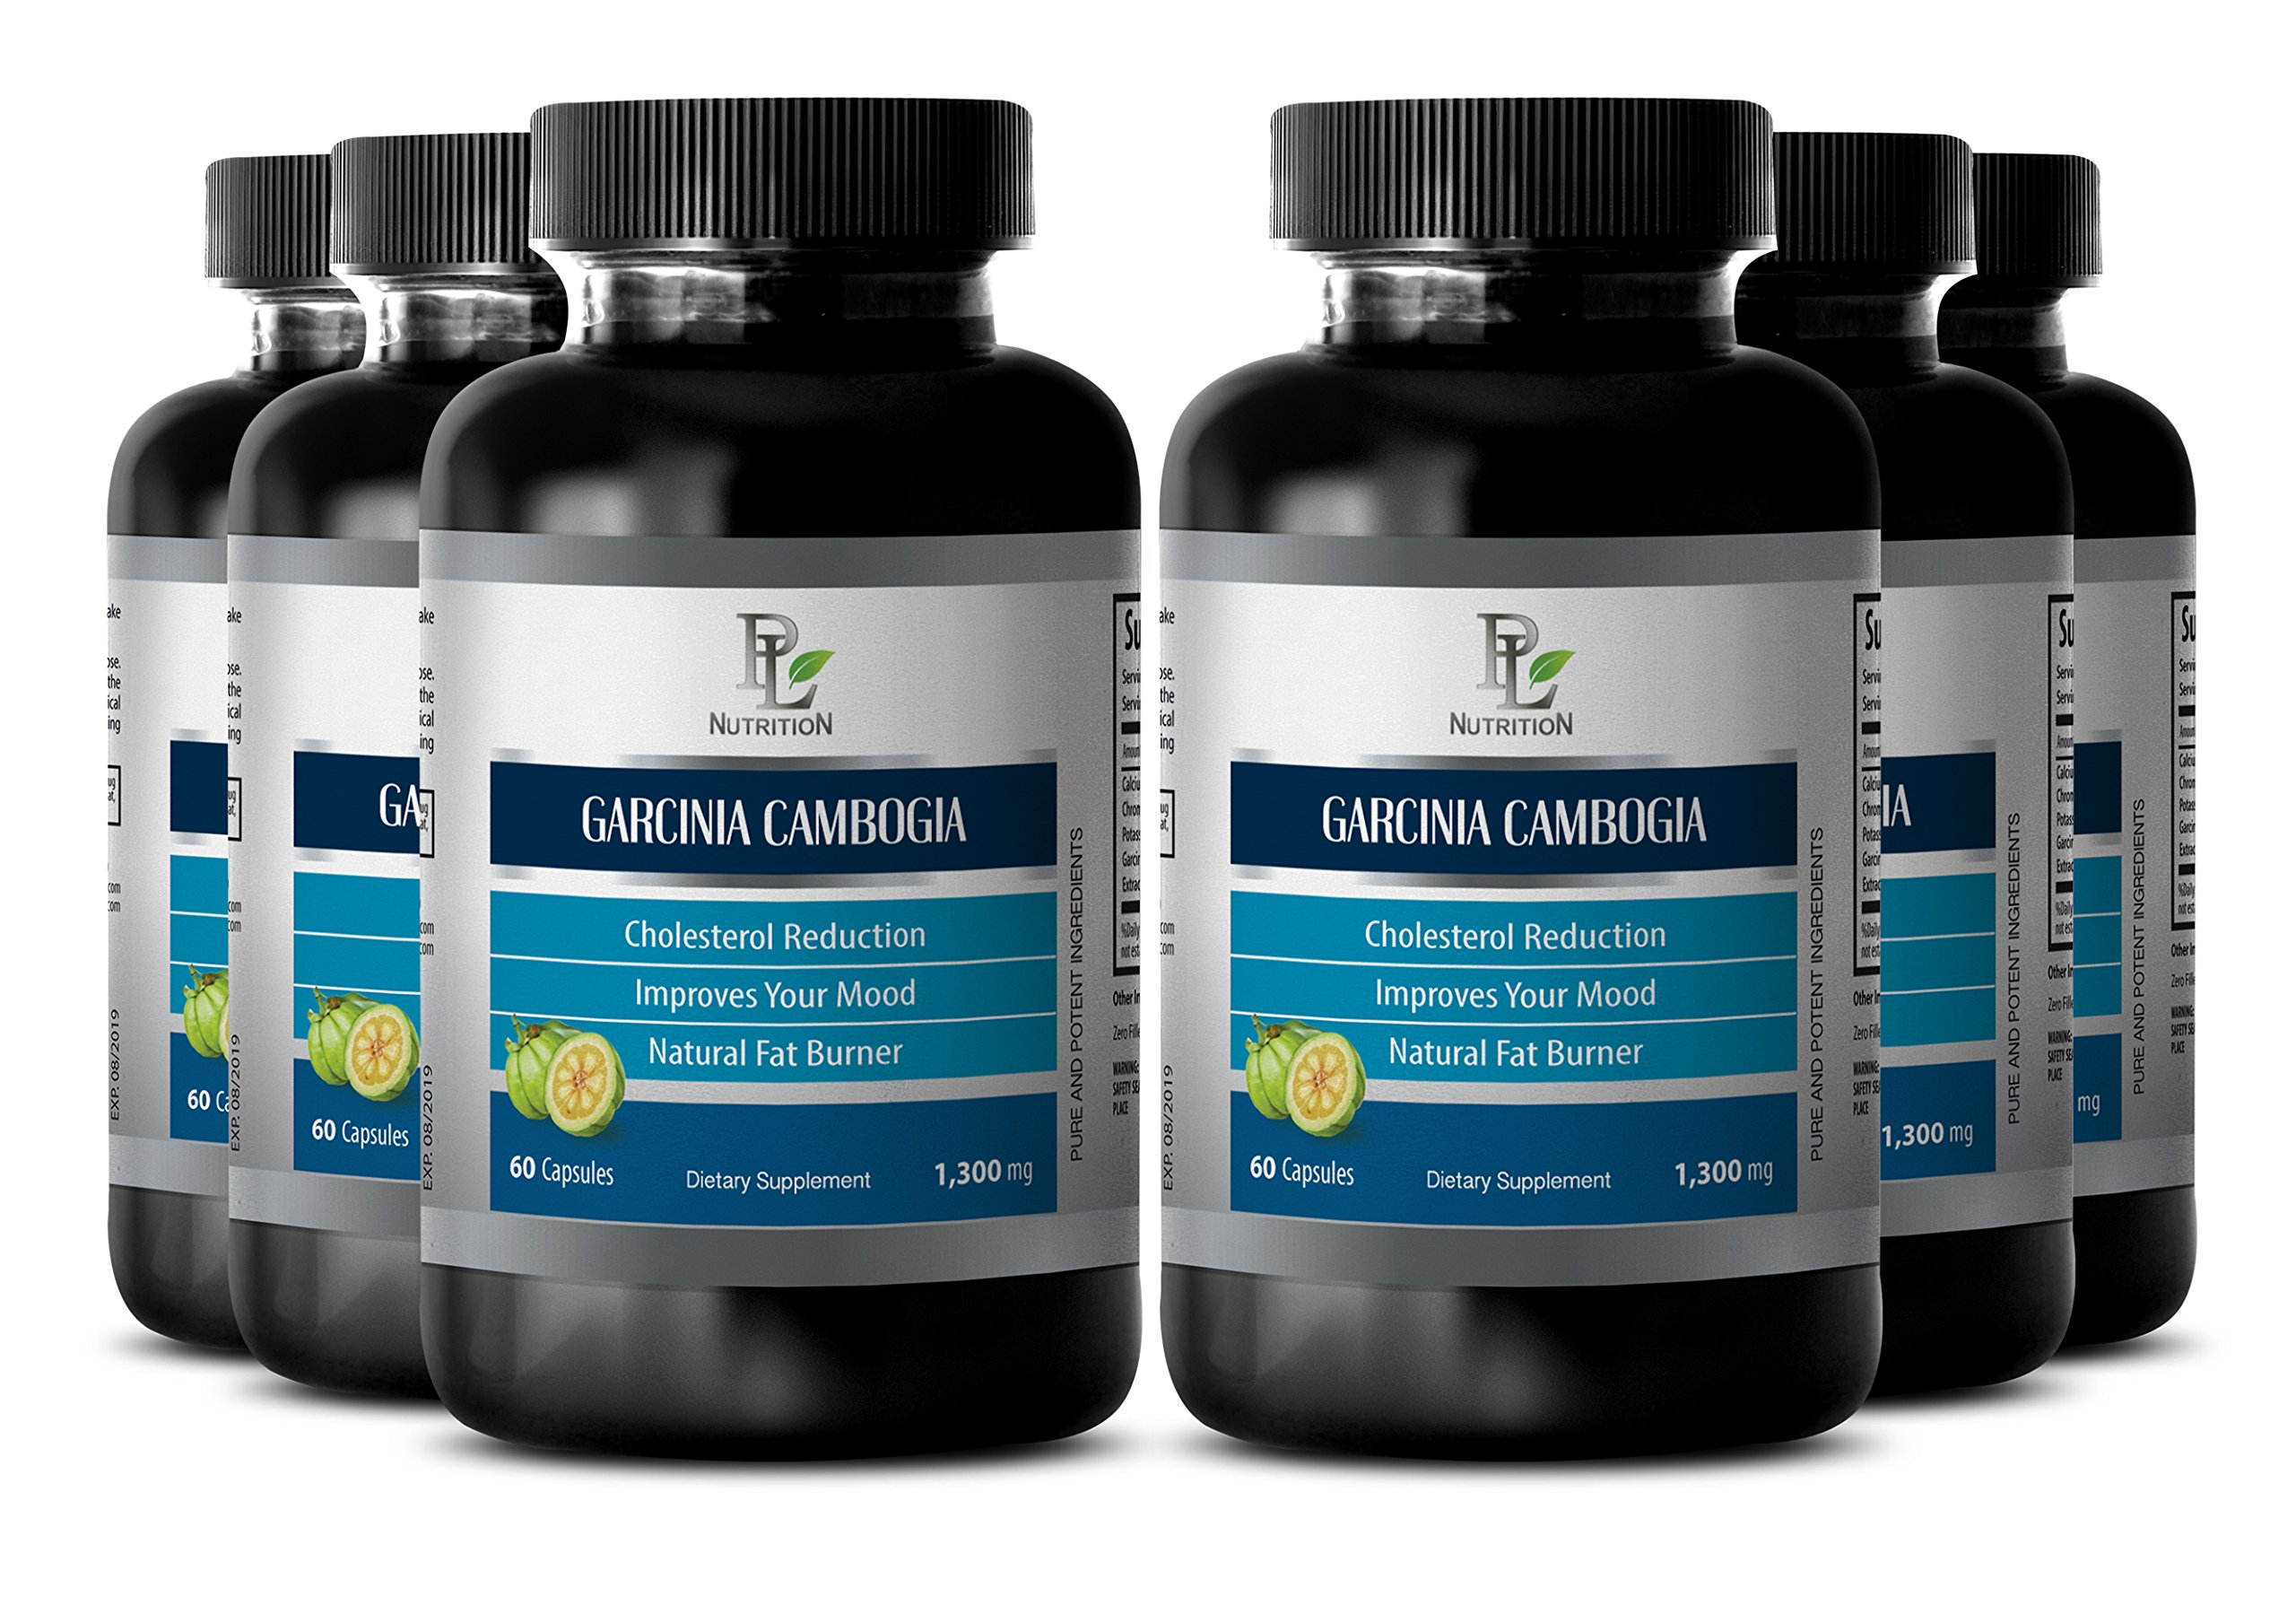 Garcinia weight loss pills - GARCINIA CAMBOGIA EXTRACT - Metabolism vitamins men - 6 Bottle 360 Capsules